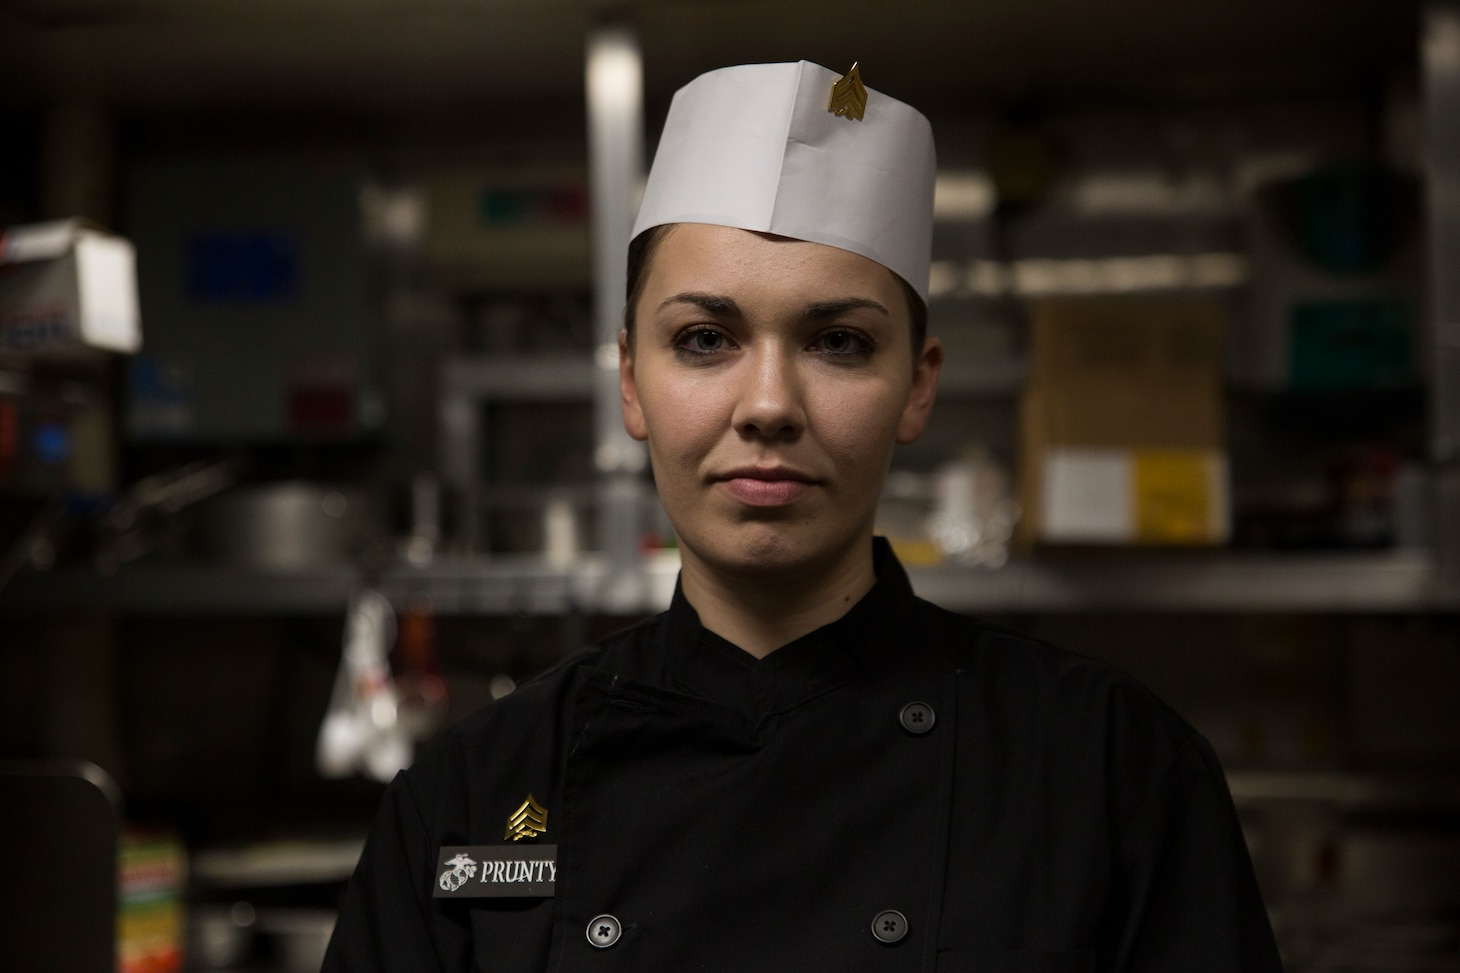 Sgt. Jordan Prunty, from Tacoma, Washington, is a food service specialist with the 31st Marine Expeditionary Unit. Growing up, Prunty found a passion for baking.